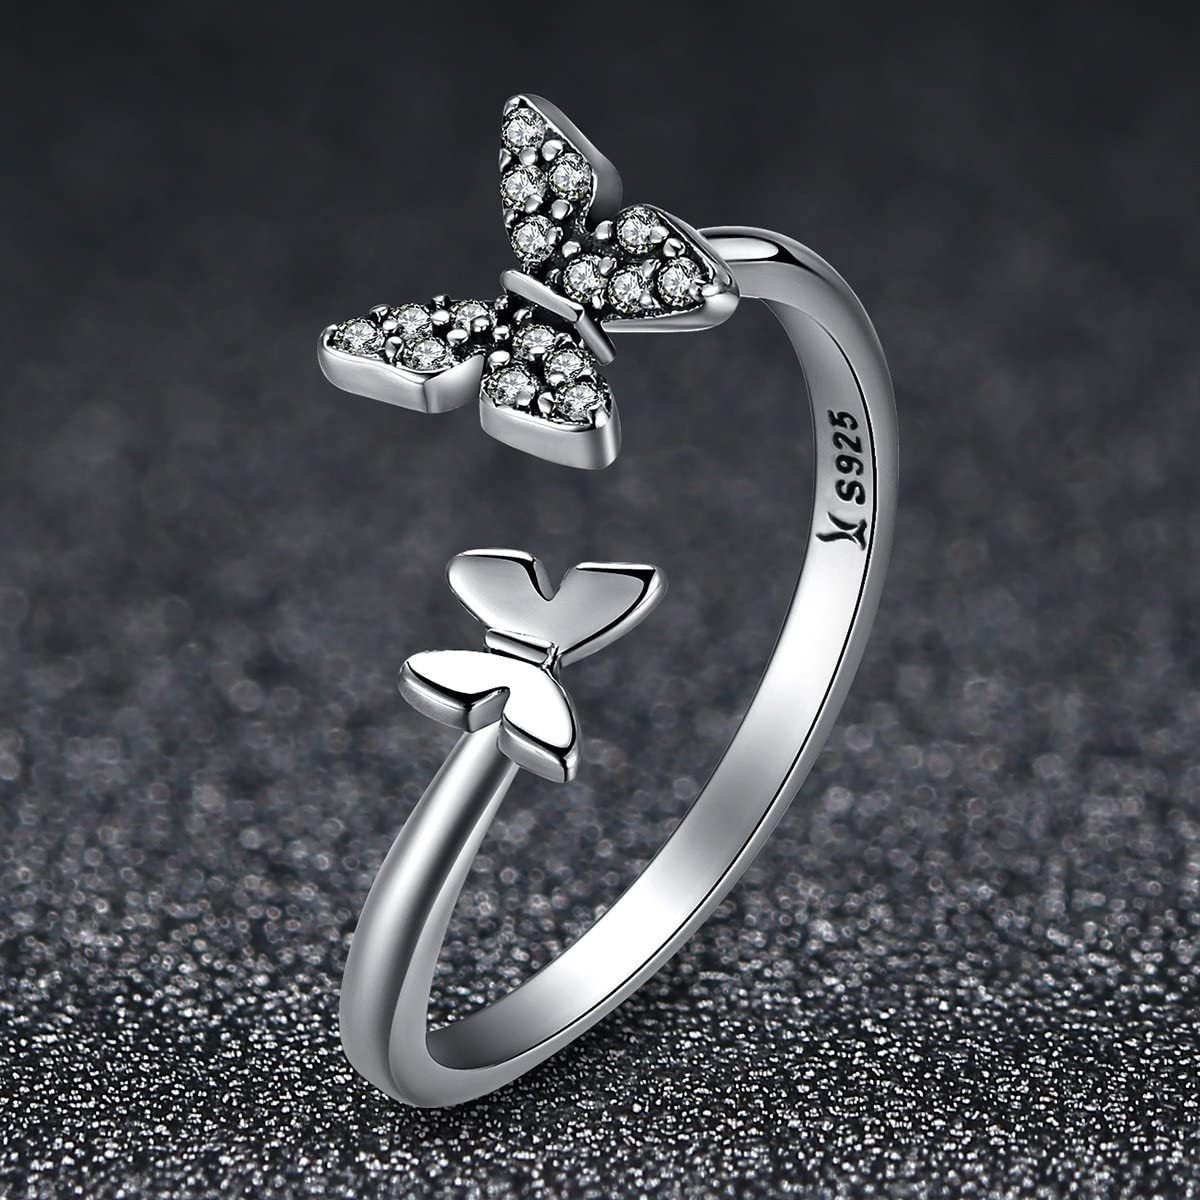 Clear CZ Everbling Dazzling CZ Butterfly Open 925 Sterling Silver Adjustable Ring